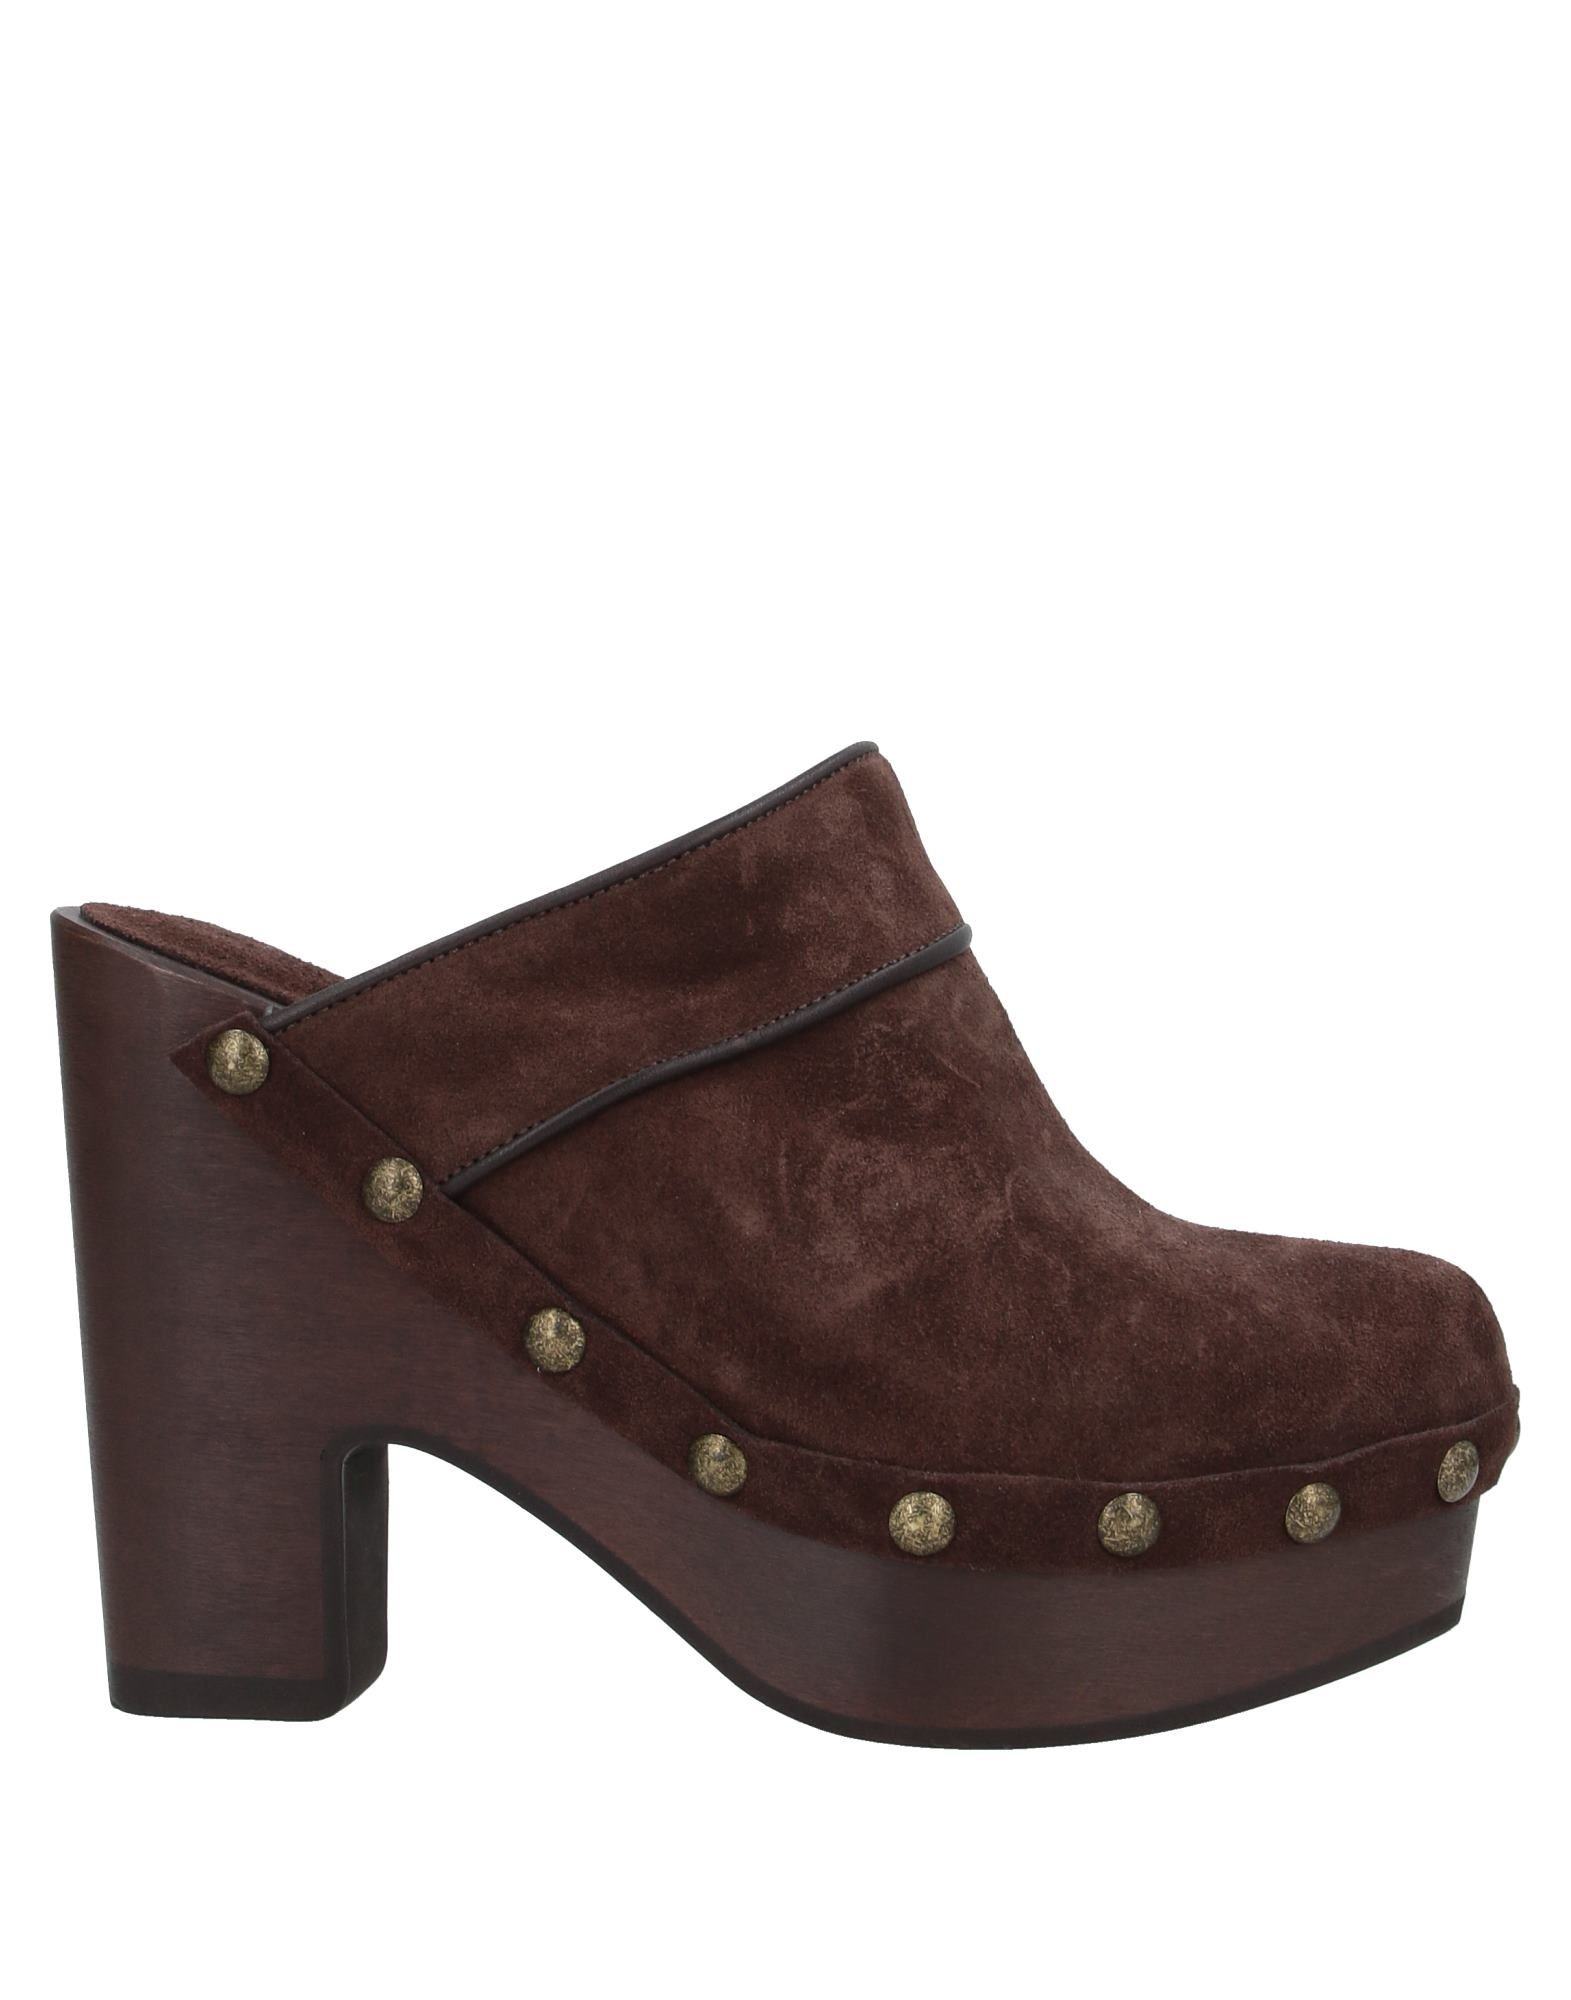 PHILOSOPHY di LORENZO SERAFINI Mules. suede effect, studs, solid color, round toeline, square heel, wooden heel, leather lining, rubber sole, contains non-textile parts of animal origin. Soft Leather